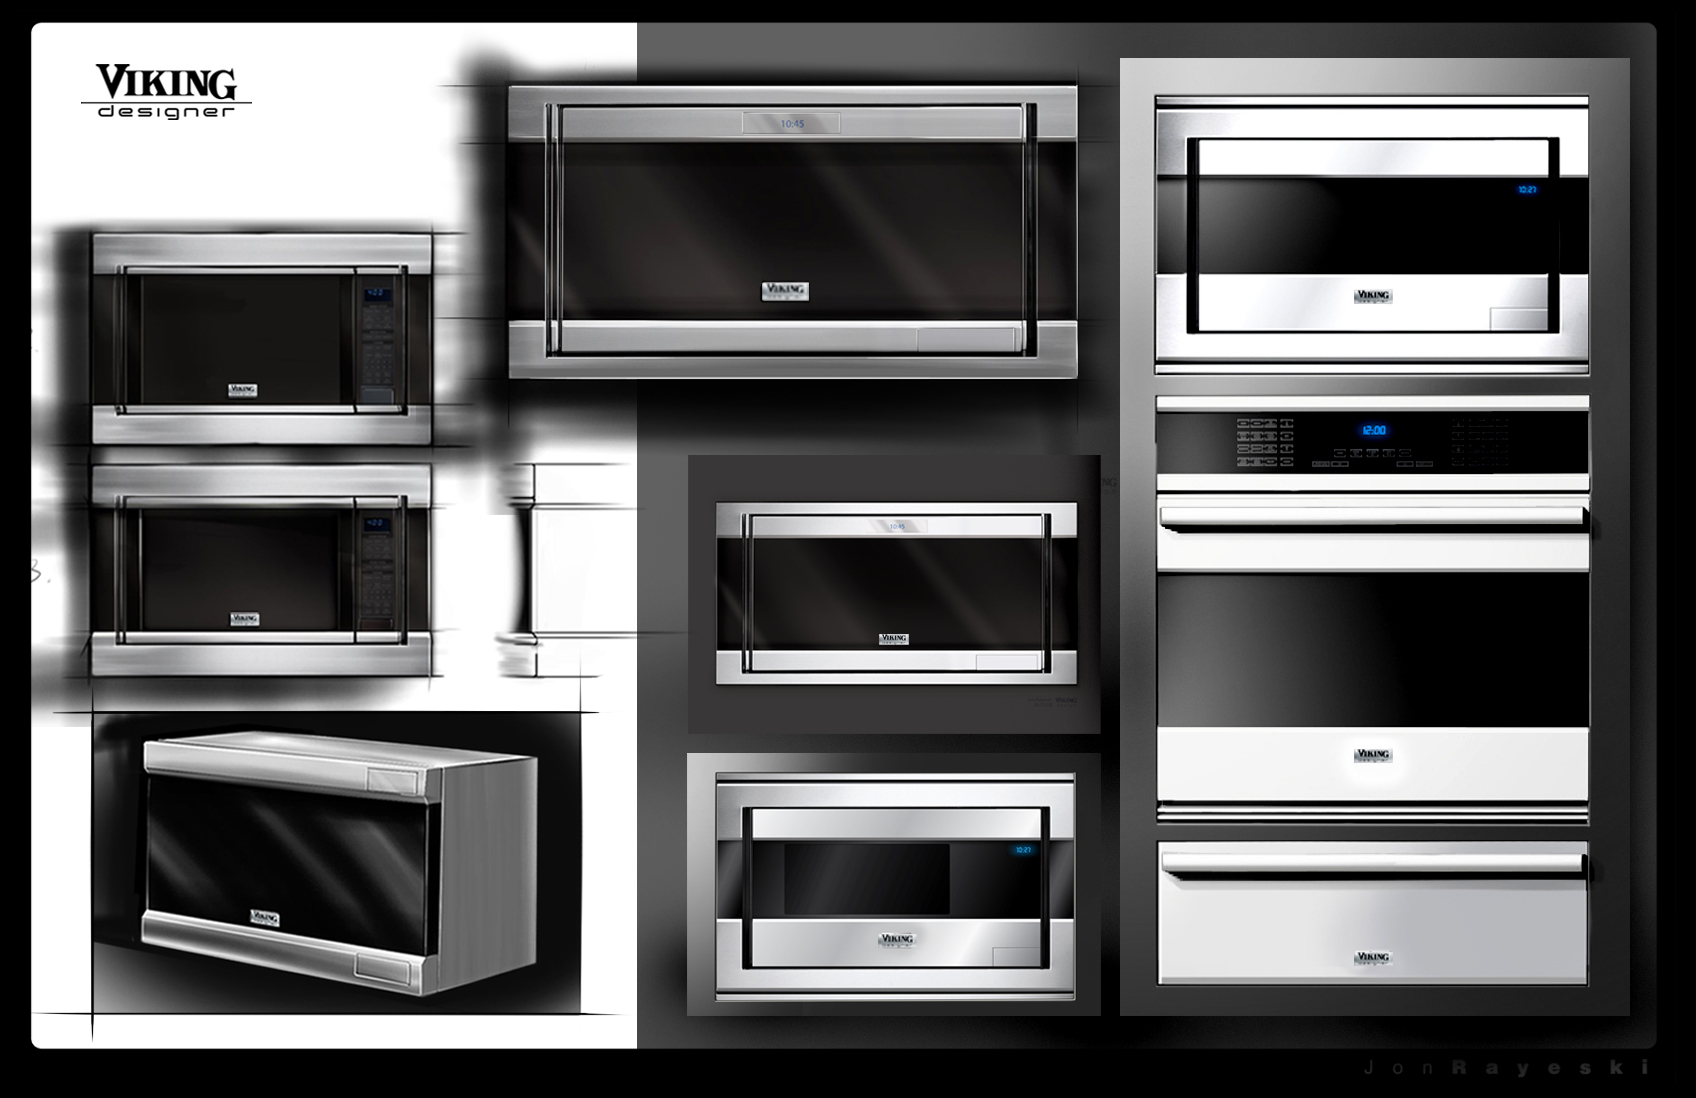 Responsibility For The New Viking Designer Series Included Design And Development Of Built In Microwave